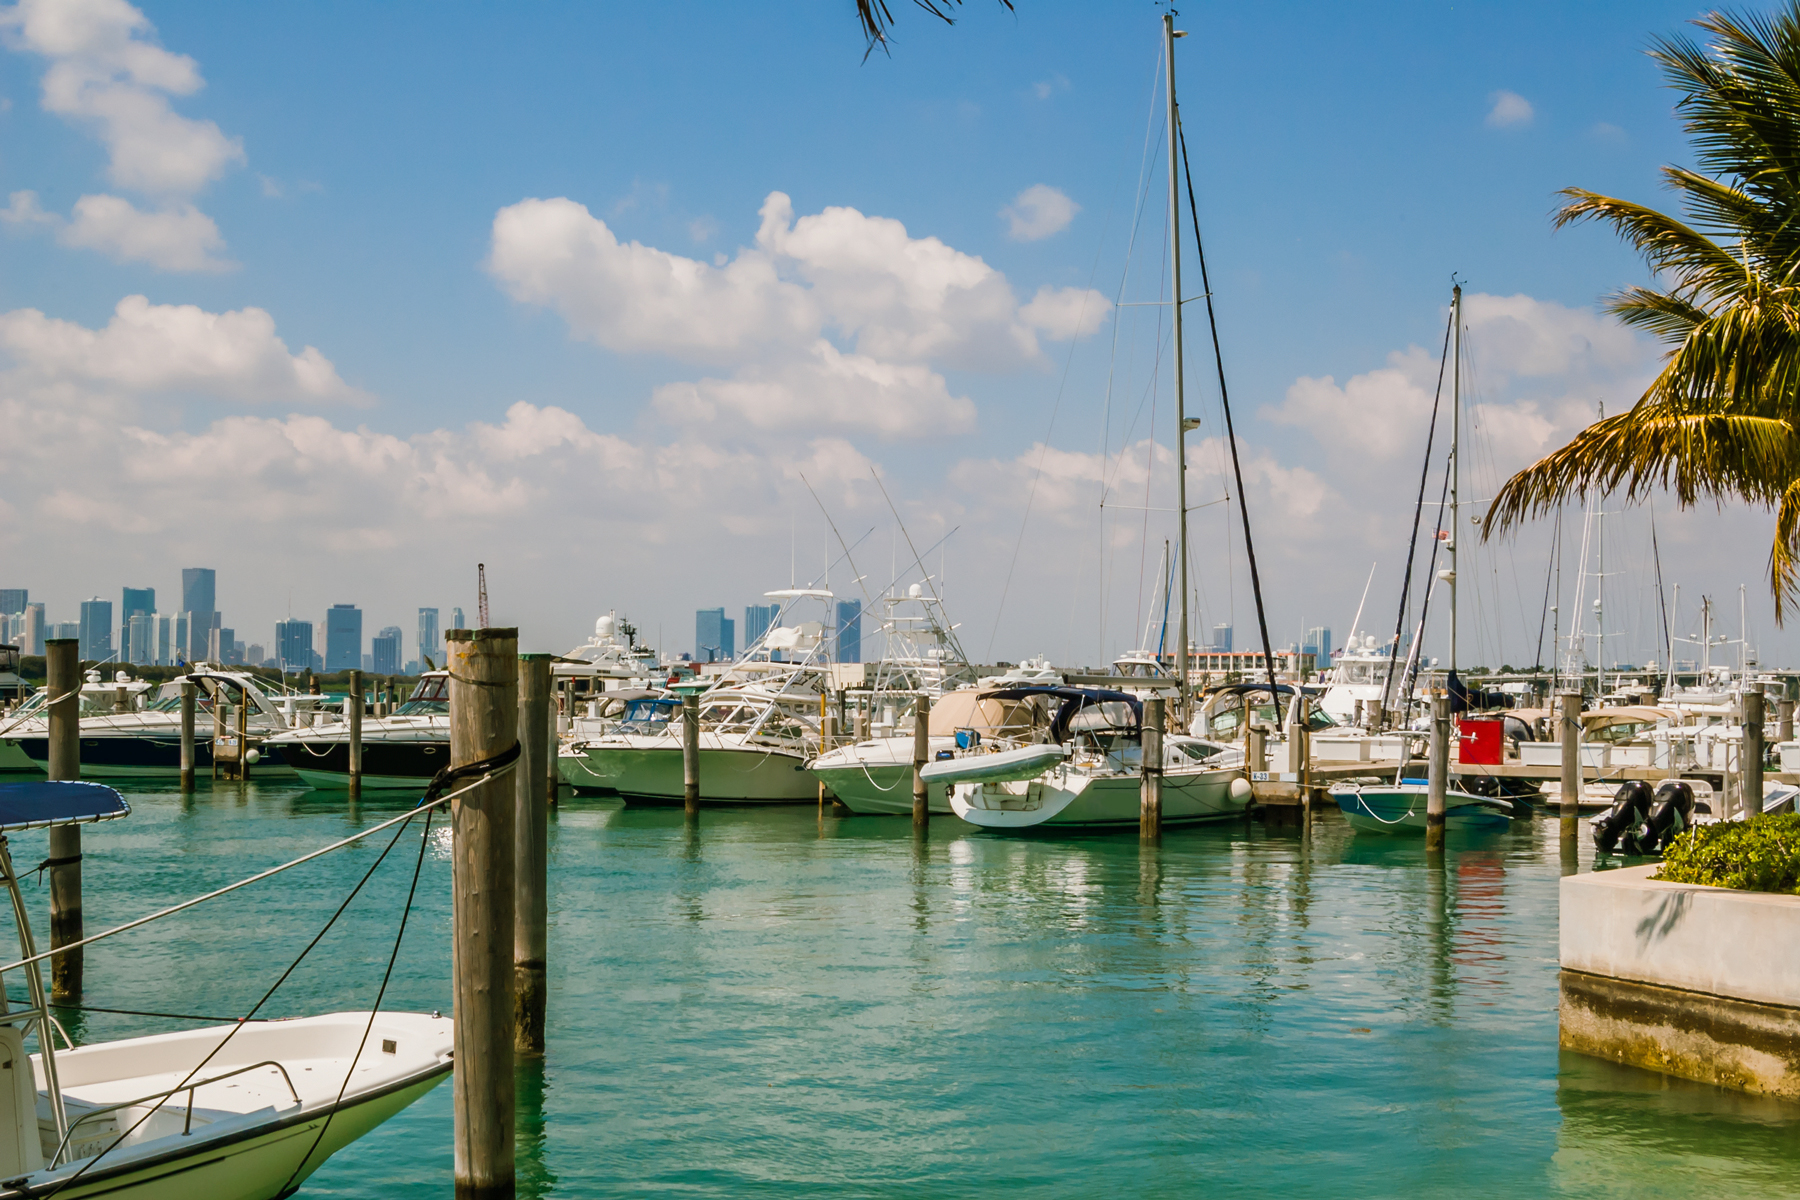 Boats at a Marina in Miami Beach with skyline in the background